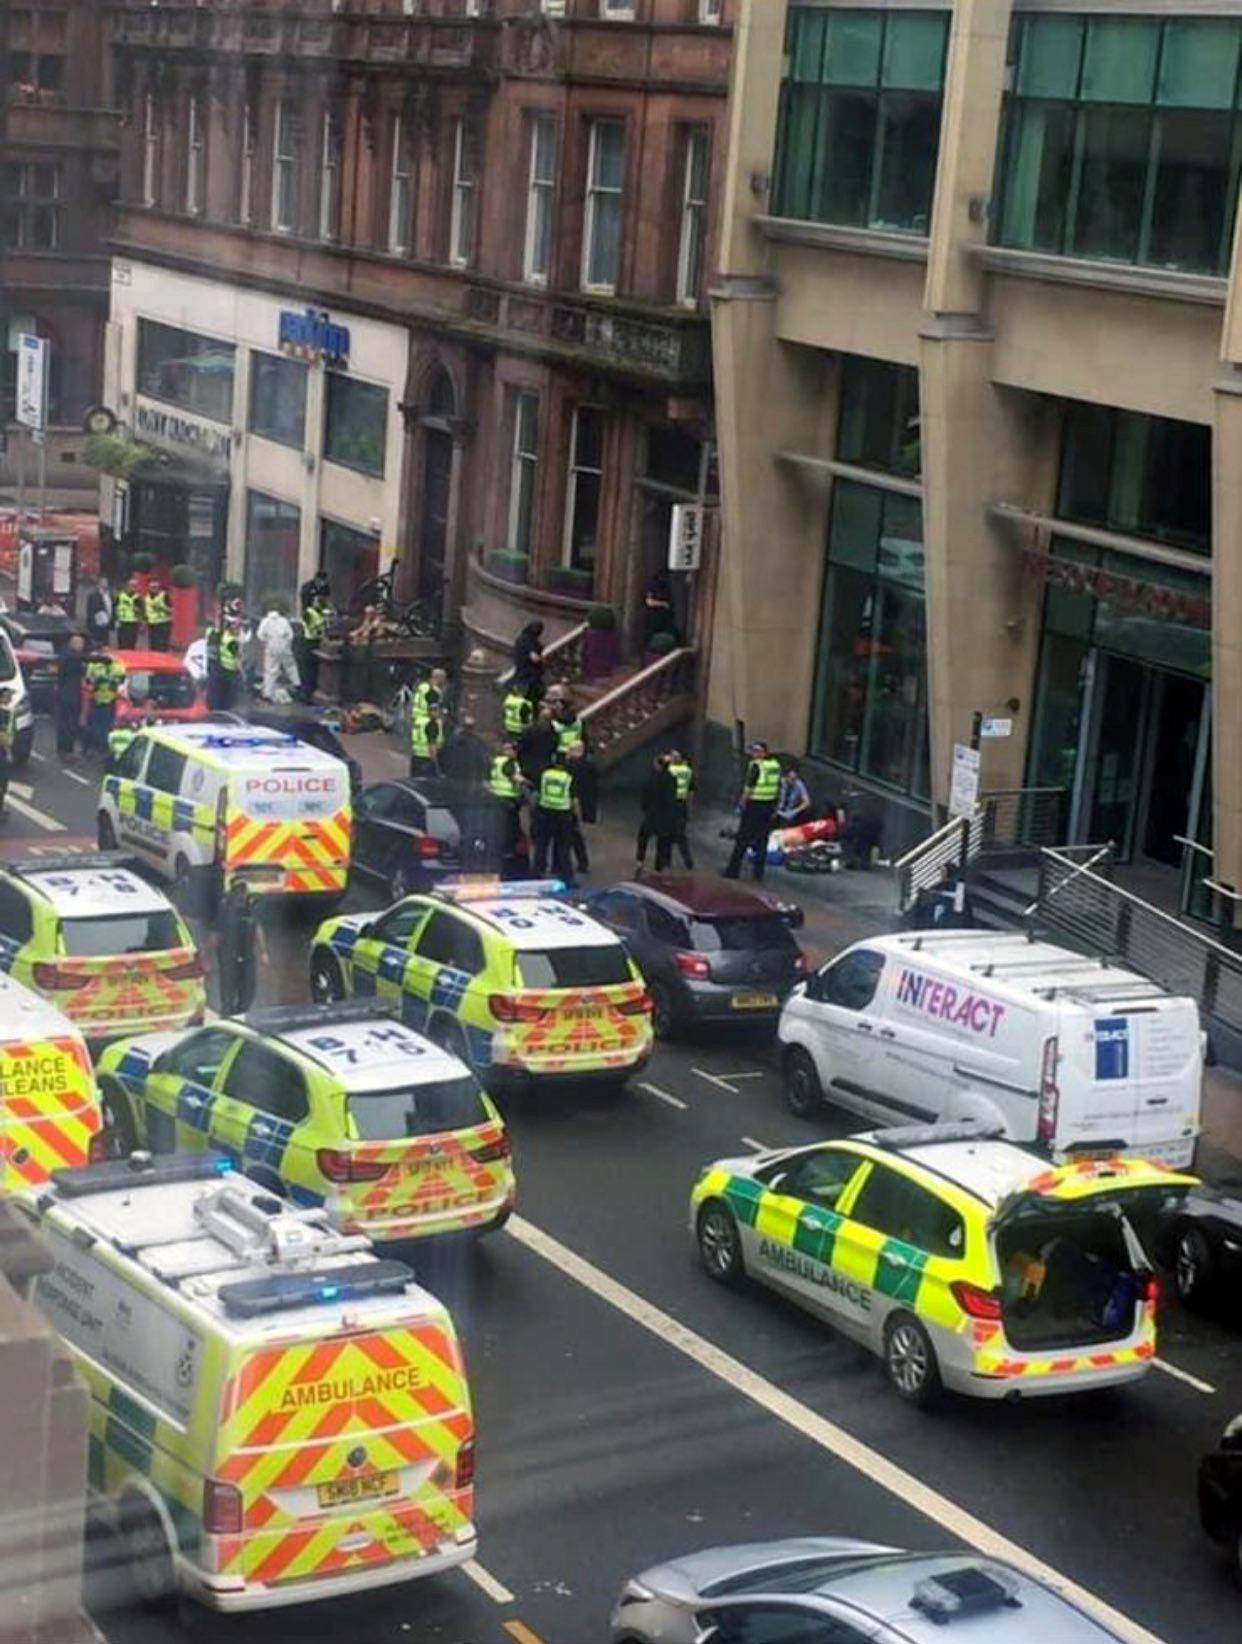 Police officers and emergency responders are seen at the scene of reported stabbings, in Glasgow